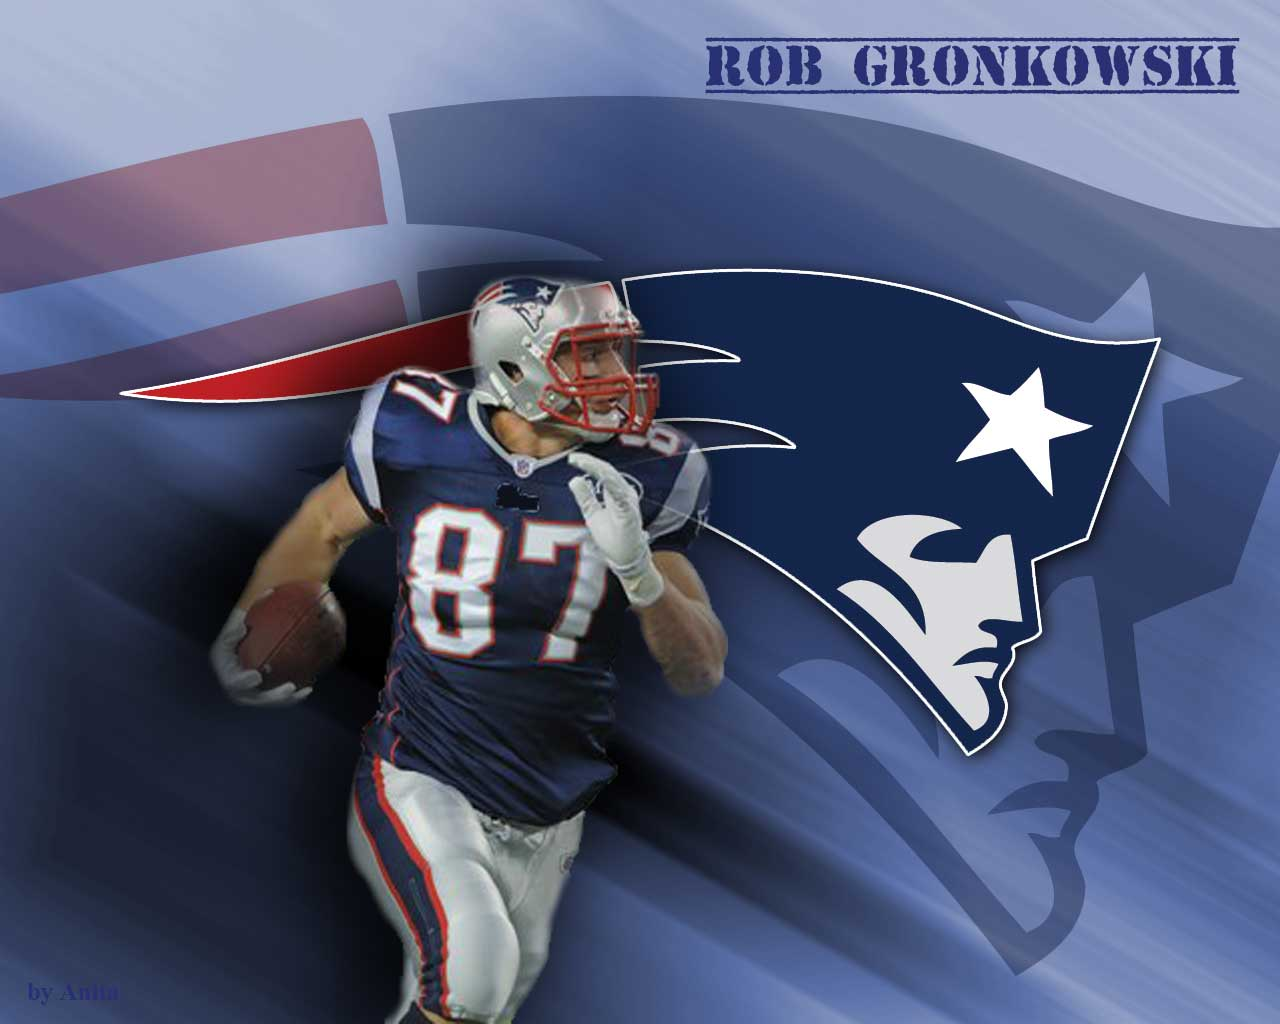 17 best images about Gronk on Pinterest | Patriots, Baby kiss and ...